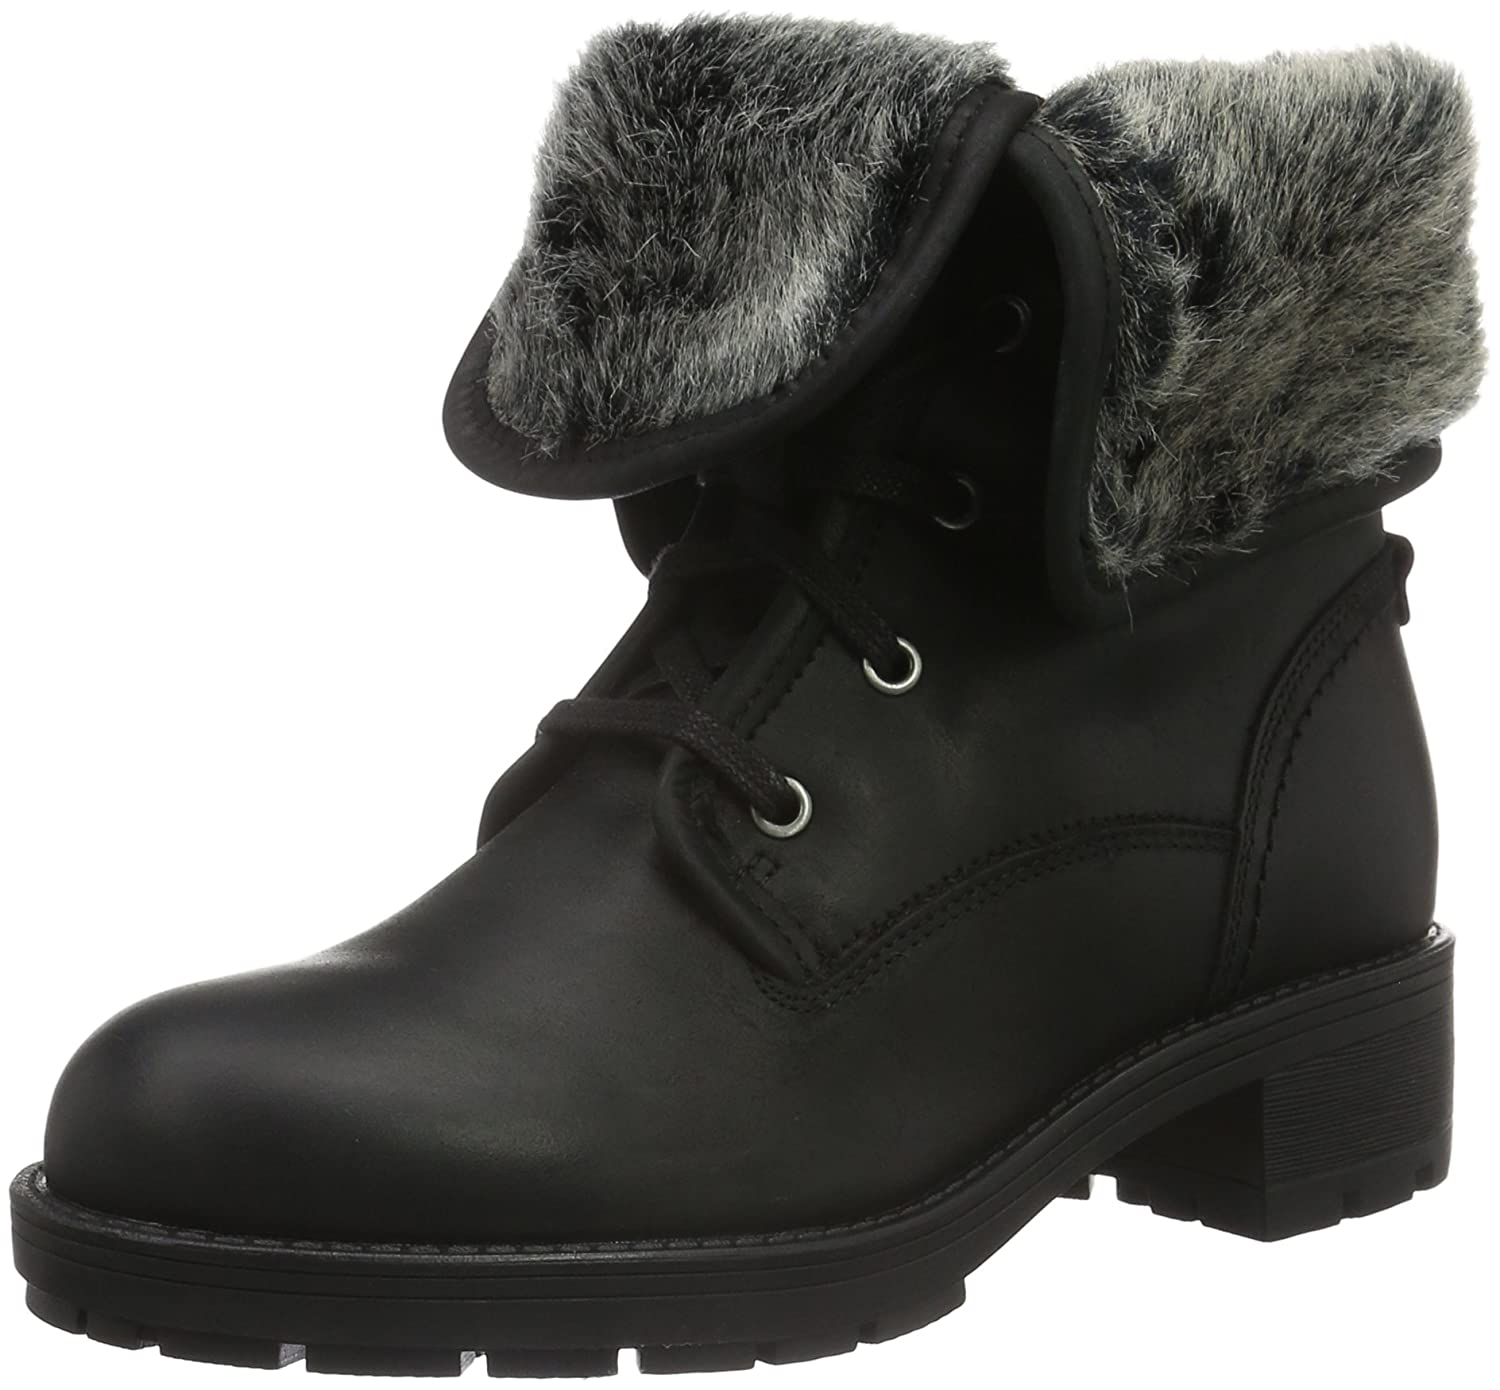 Clarks Reunite Up GTX, Botas Biker para Mujer41.5 EU|Negro (Black Leather)